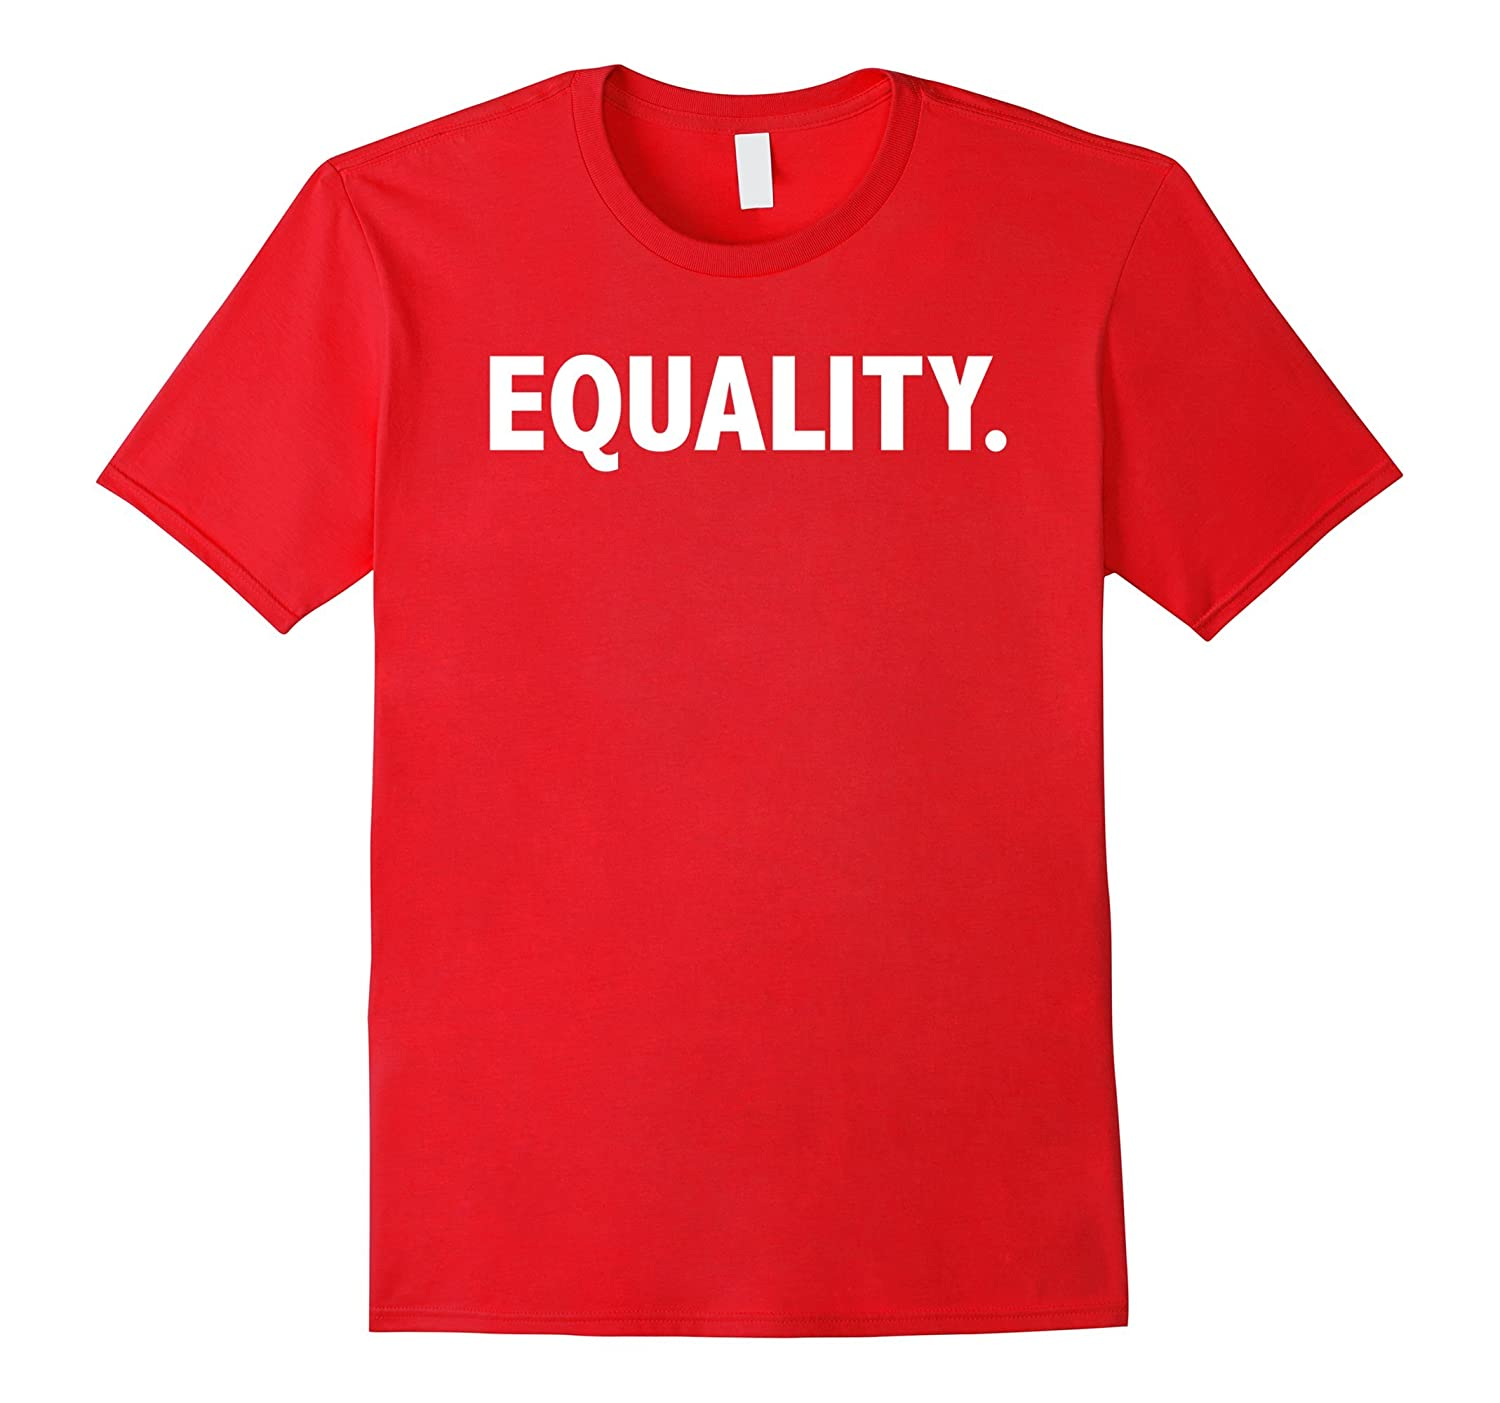 Equality T-Shirt | Peace, Love, Unity, Equal Rights For All-FL